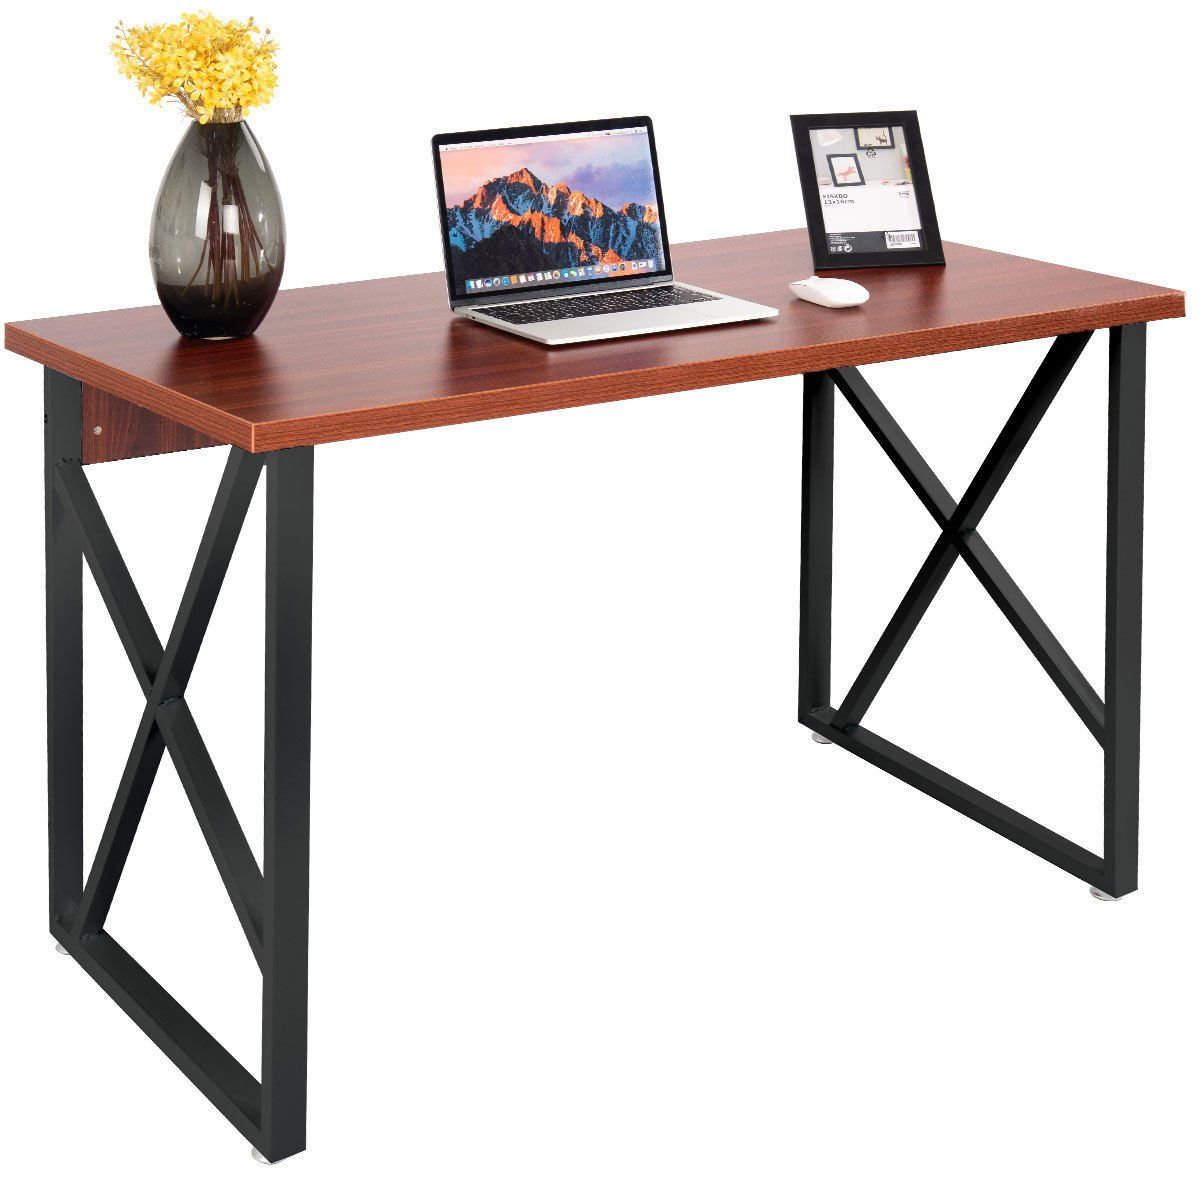 Tangkula Computer Desk PC Laptop Home Office Modern Simple Style Wood Study Workstation Writing Table Wooden Furniture Set (coffee desktop with black legs)